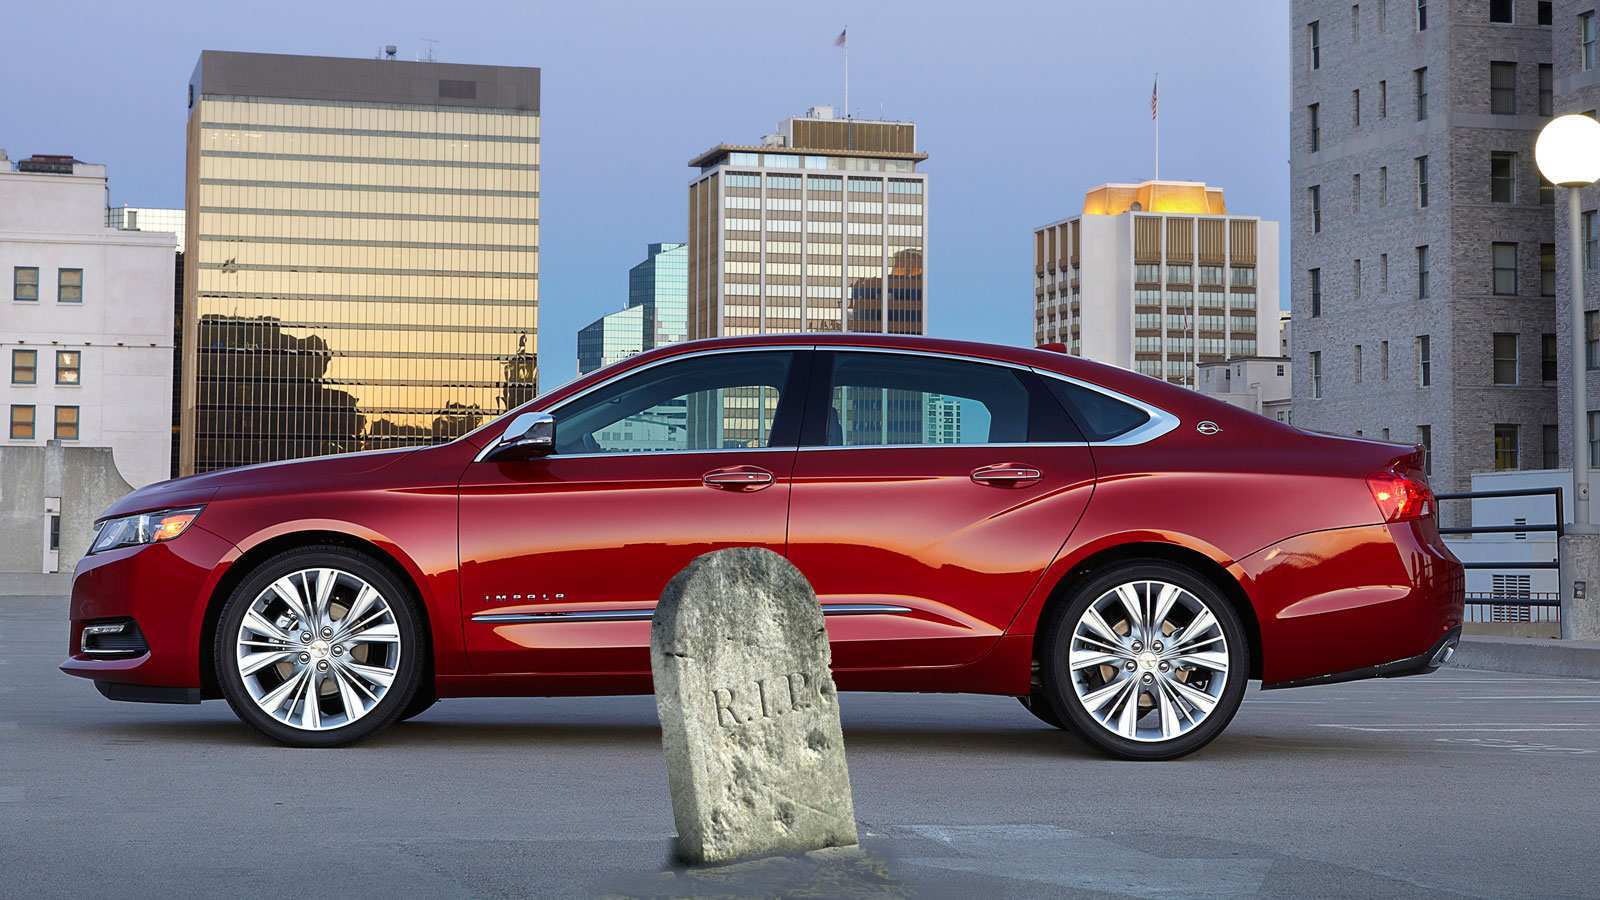 82 Best Review Chevrolet Impala 2020 Exterior with Chevrolet Impala 2020